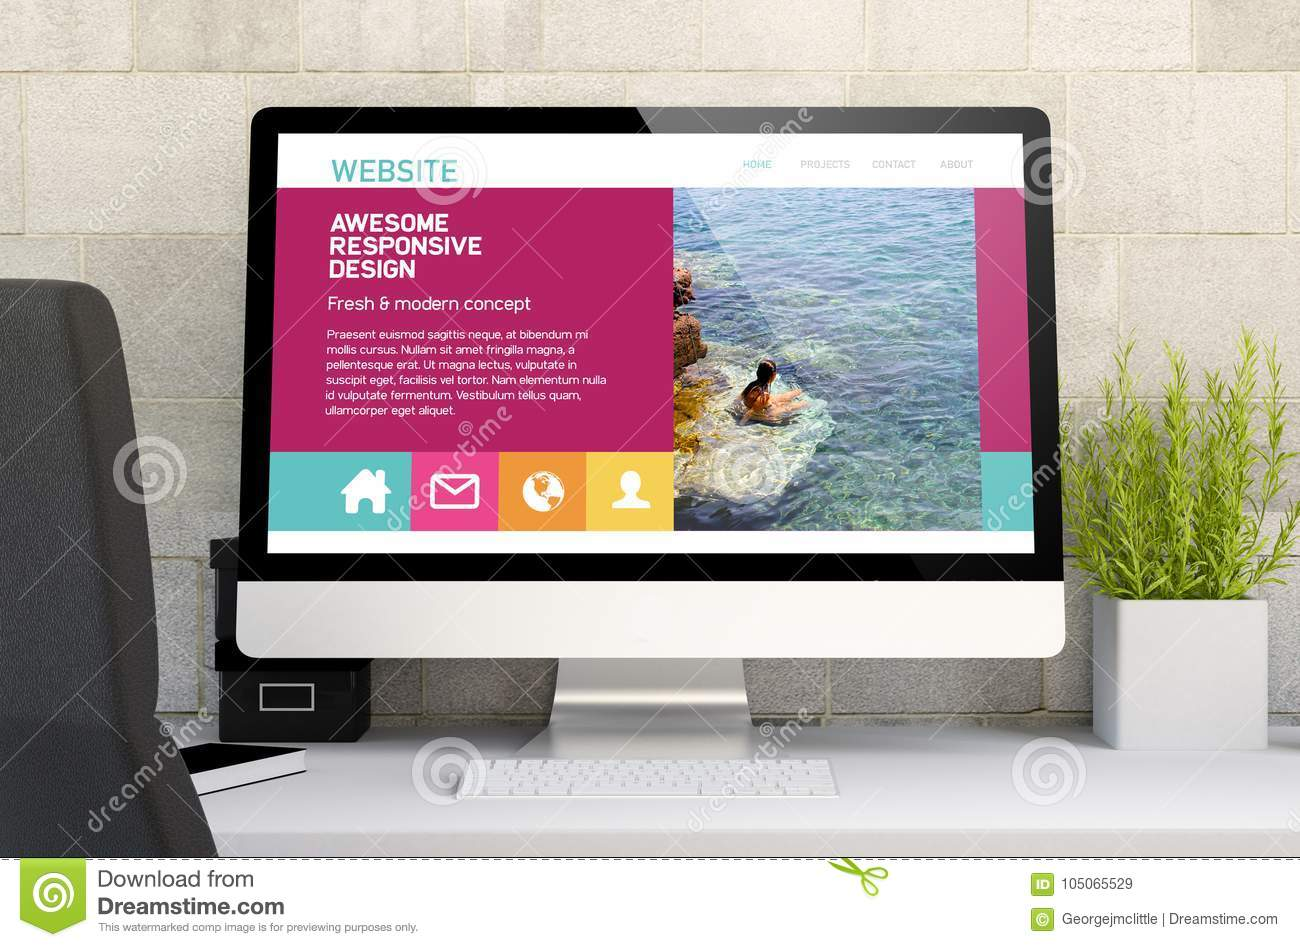 workspace with awesomw responsive design